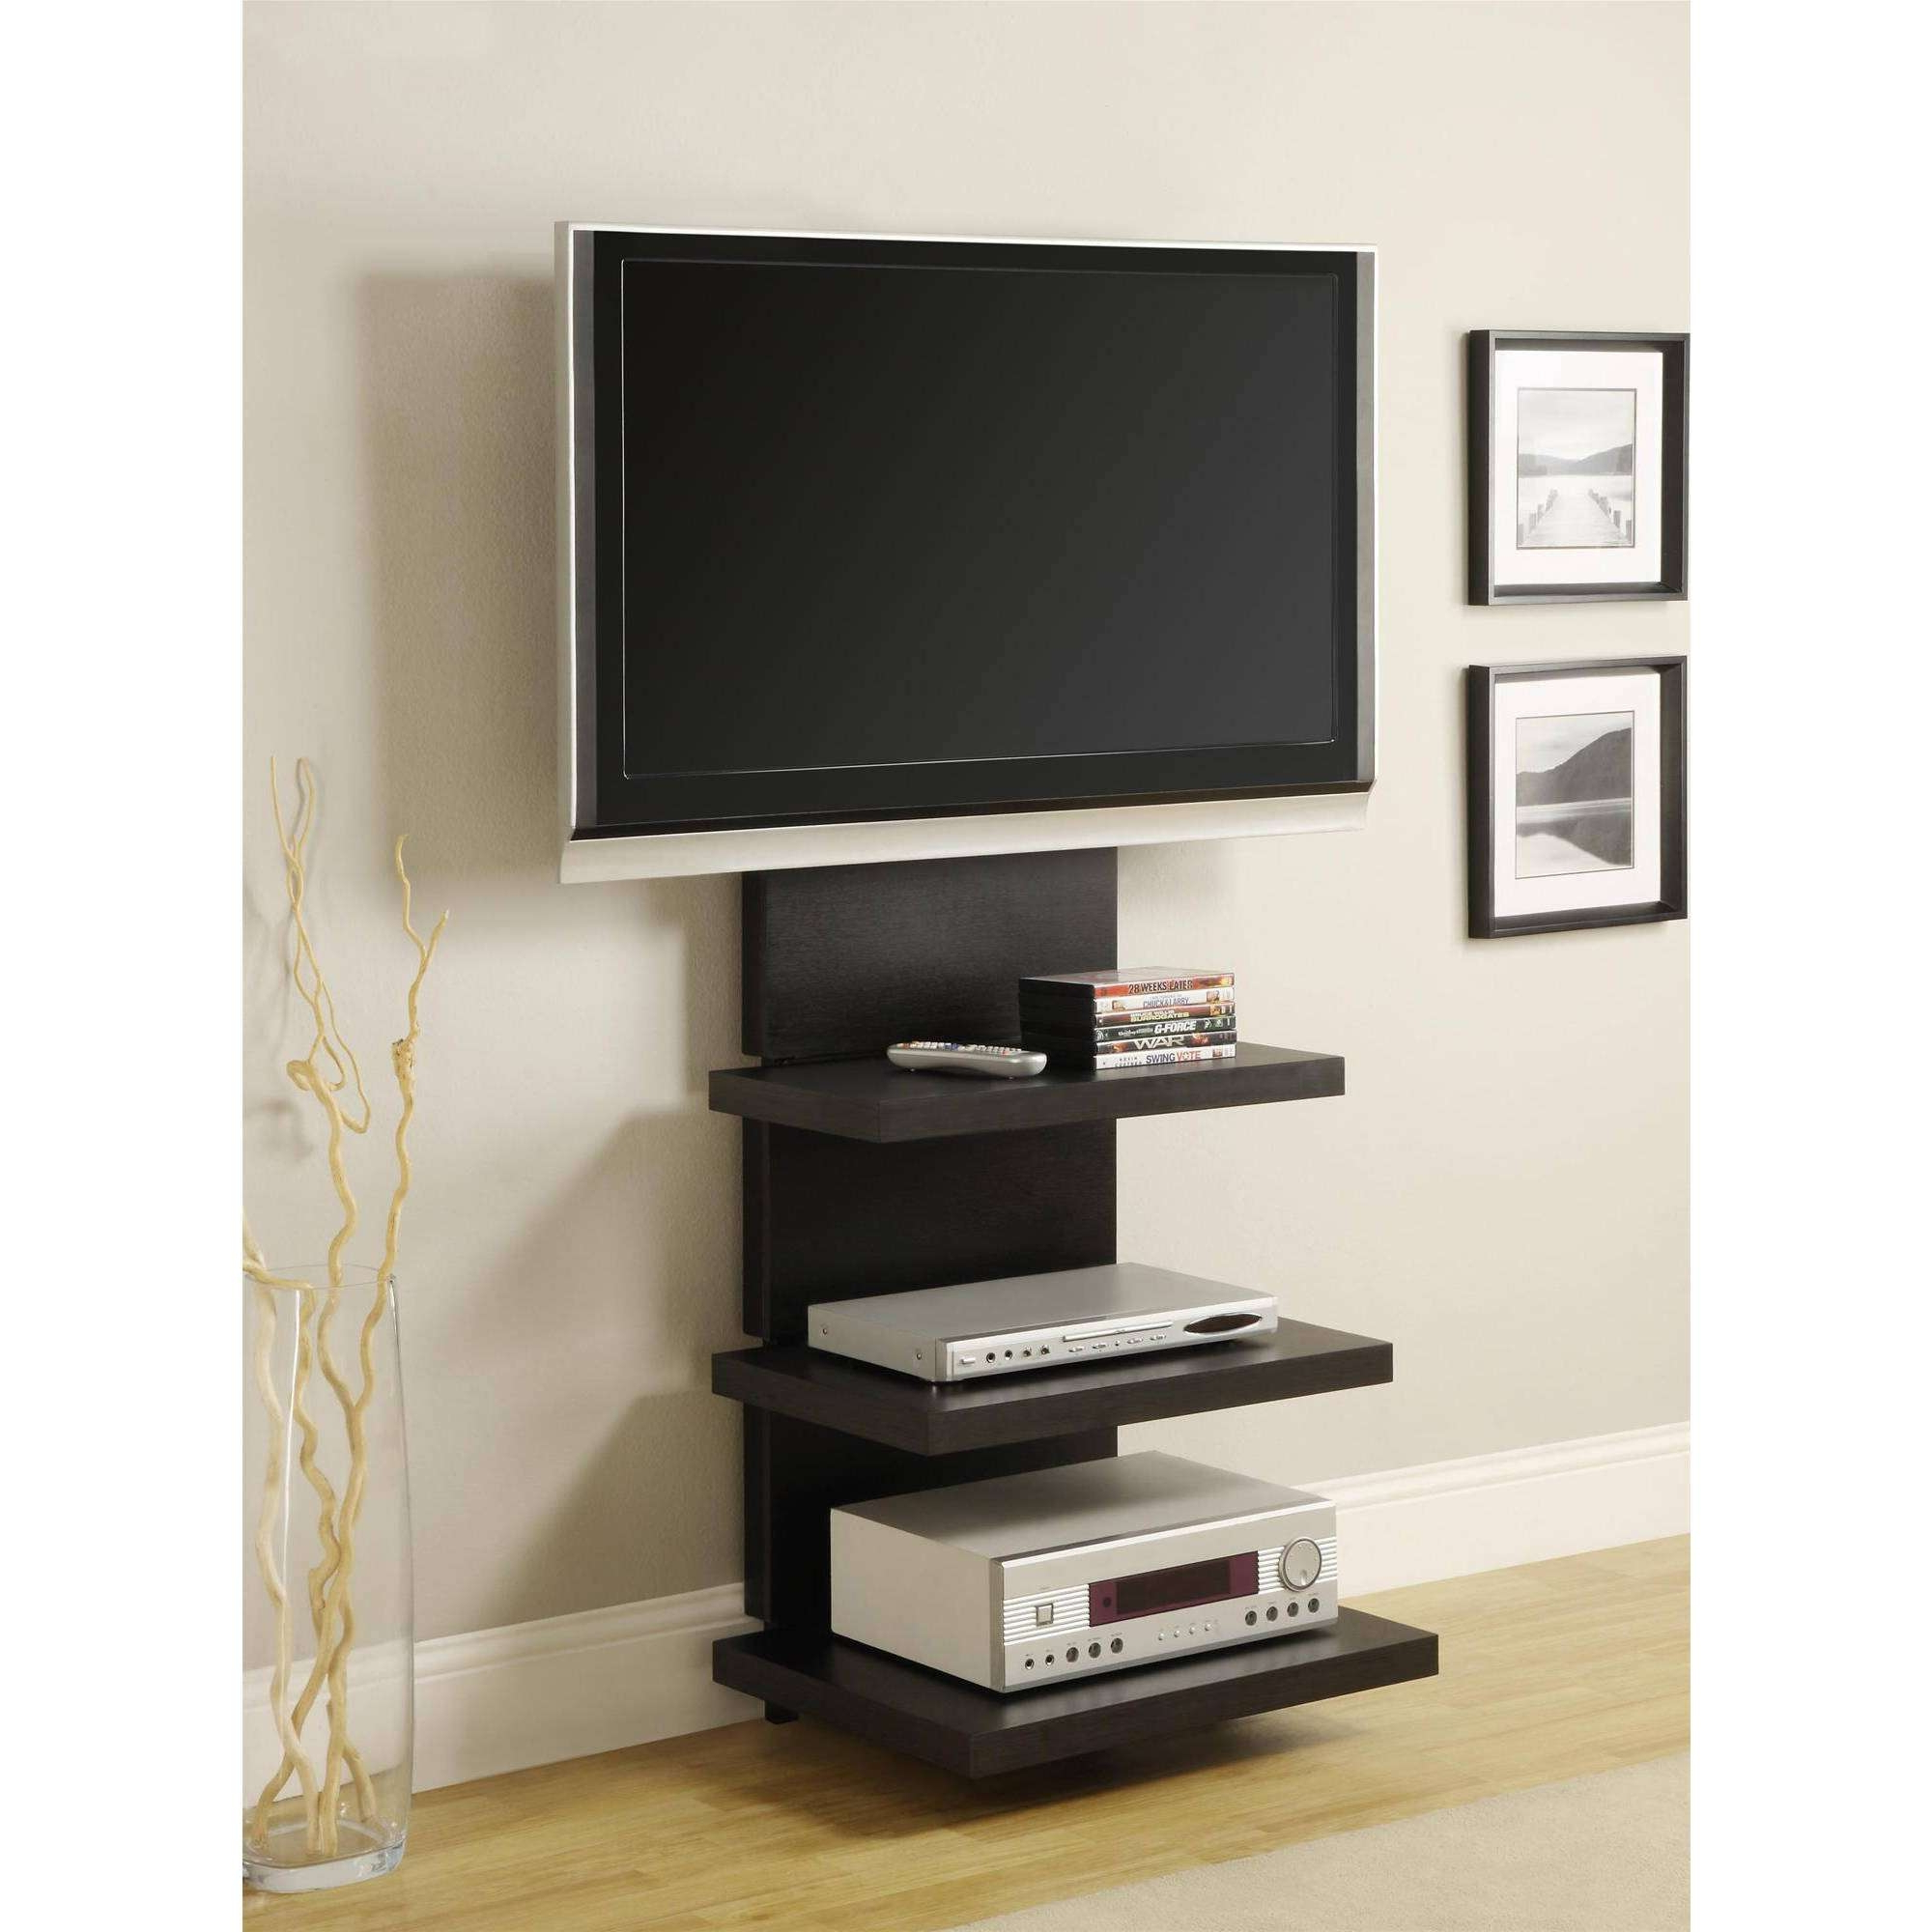 Tall Skinny Tv Stands In Newest Tall Tv Stand Cheap Narrow With Storage Stands For Flat Screens (View 3 of 20)